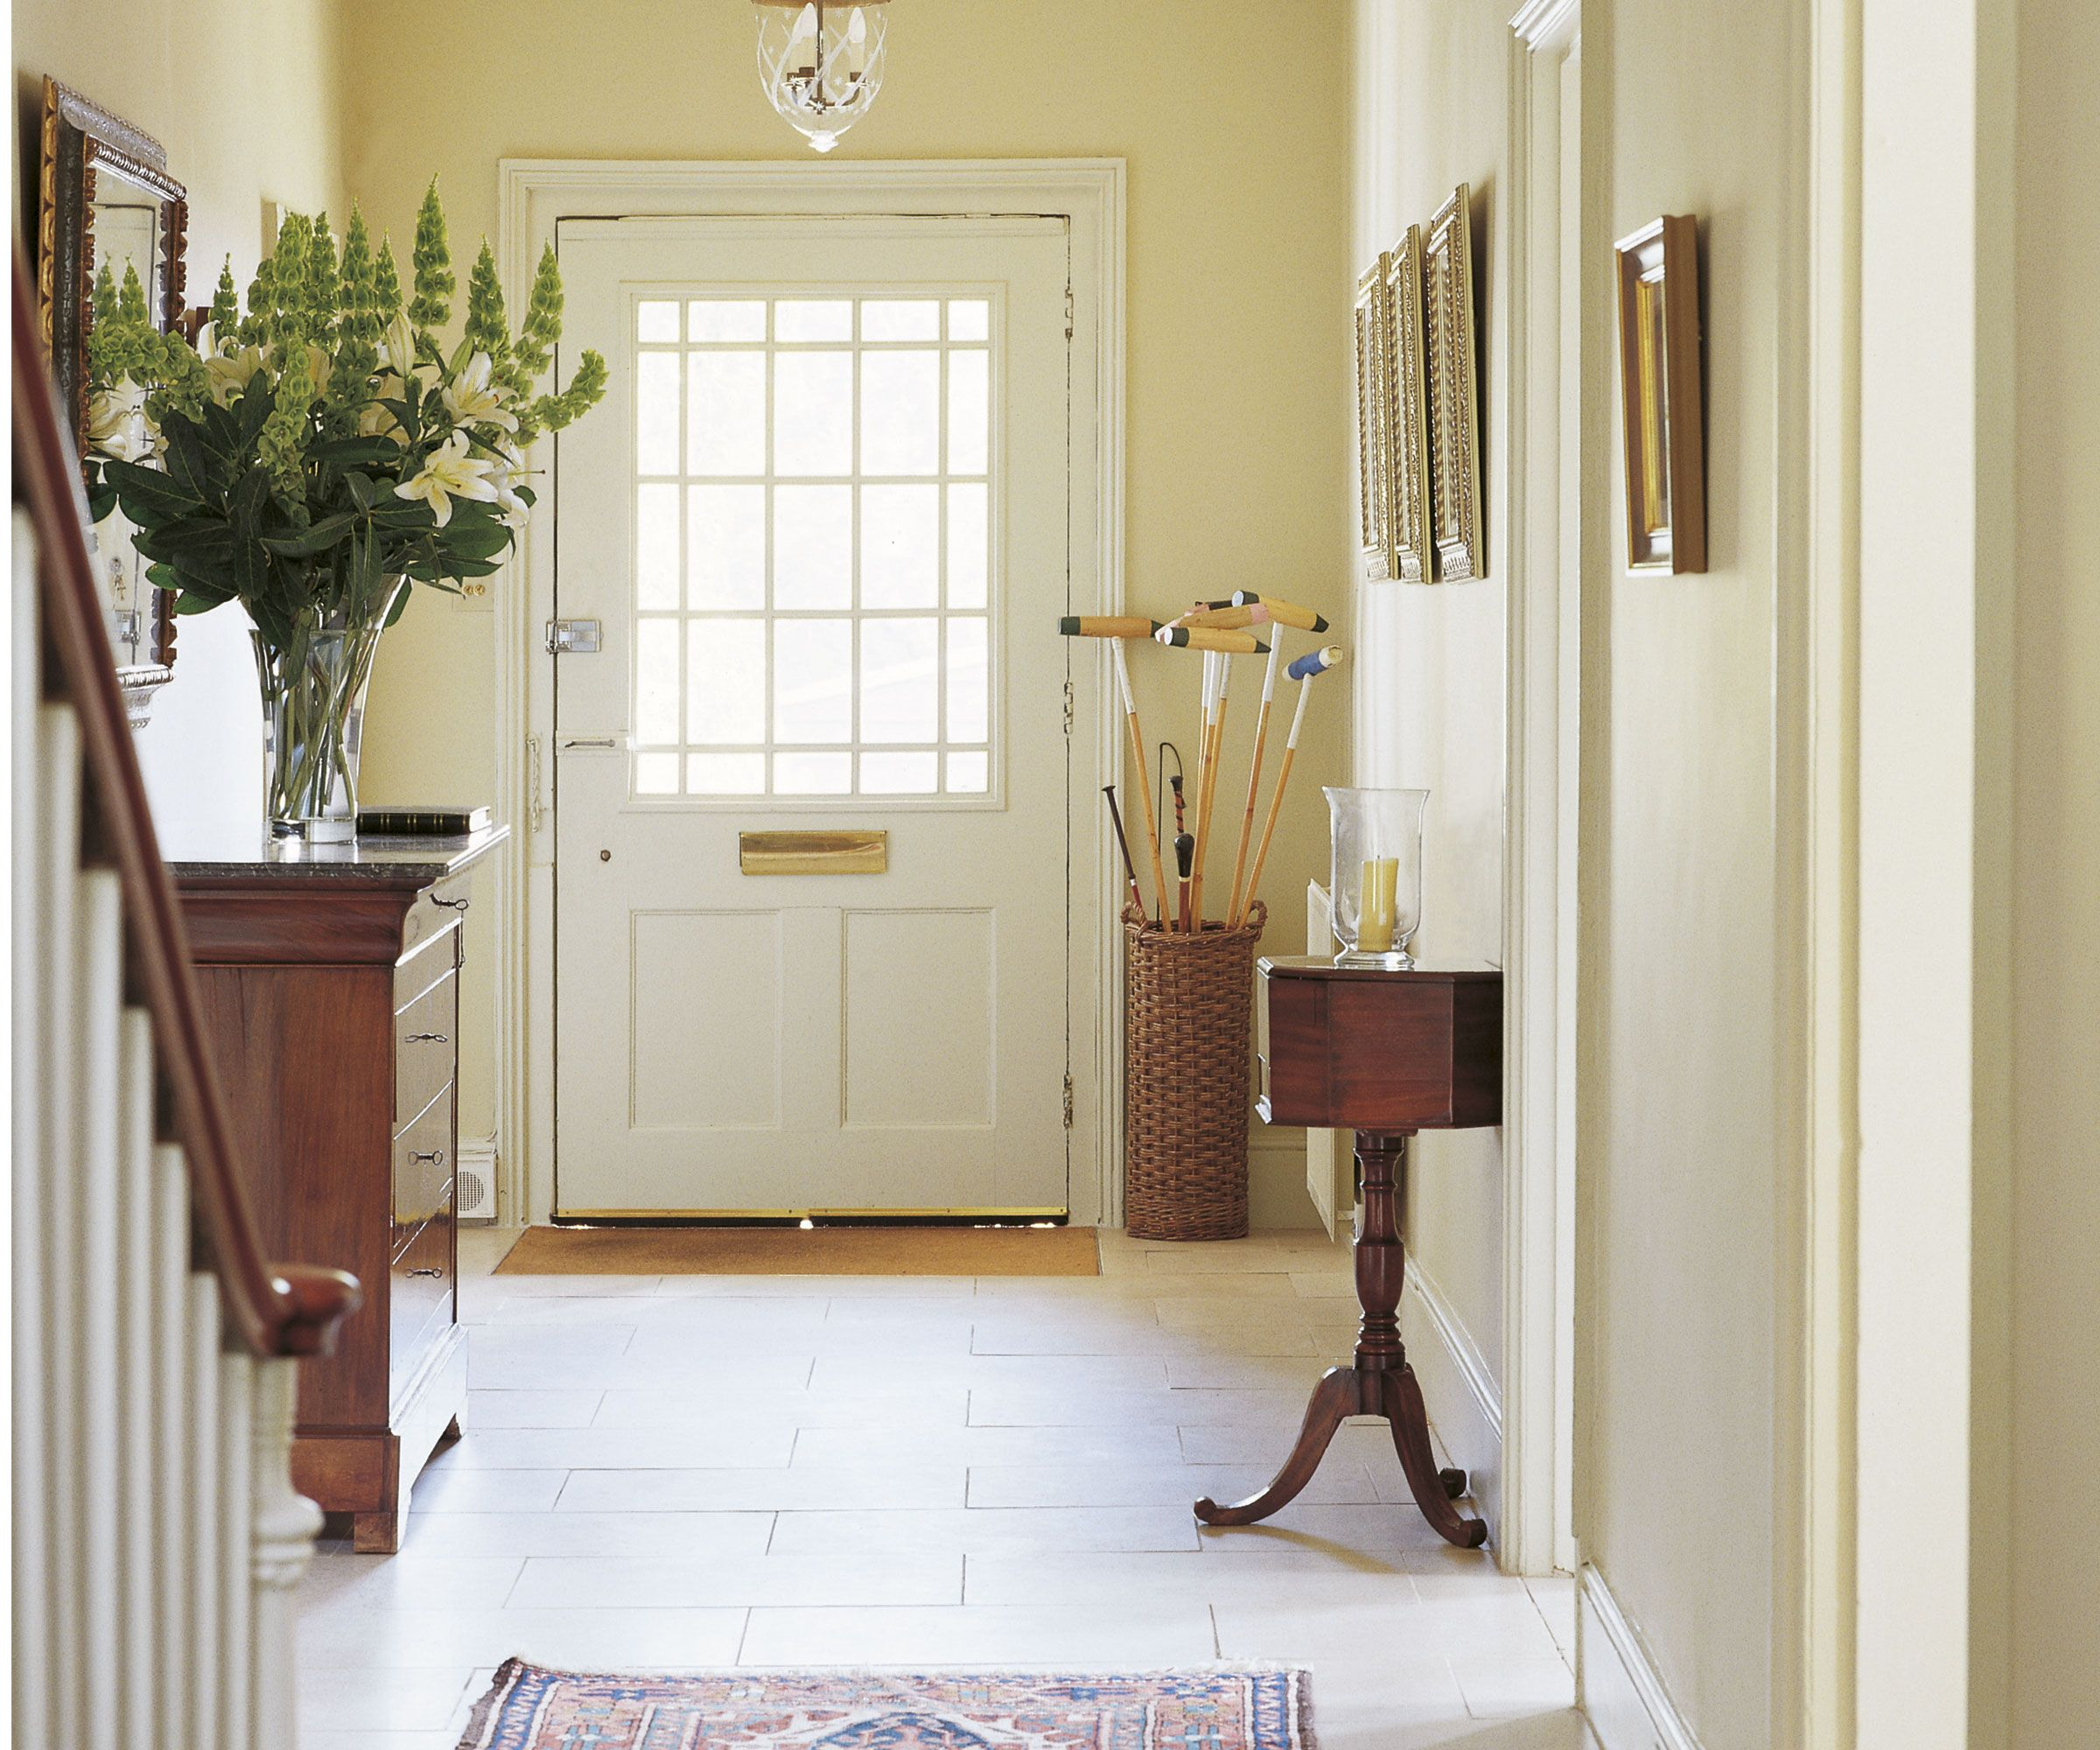 Hallway Decorating Ideas To Make The Most Of Your Entrance Way